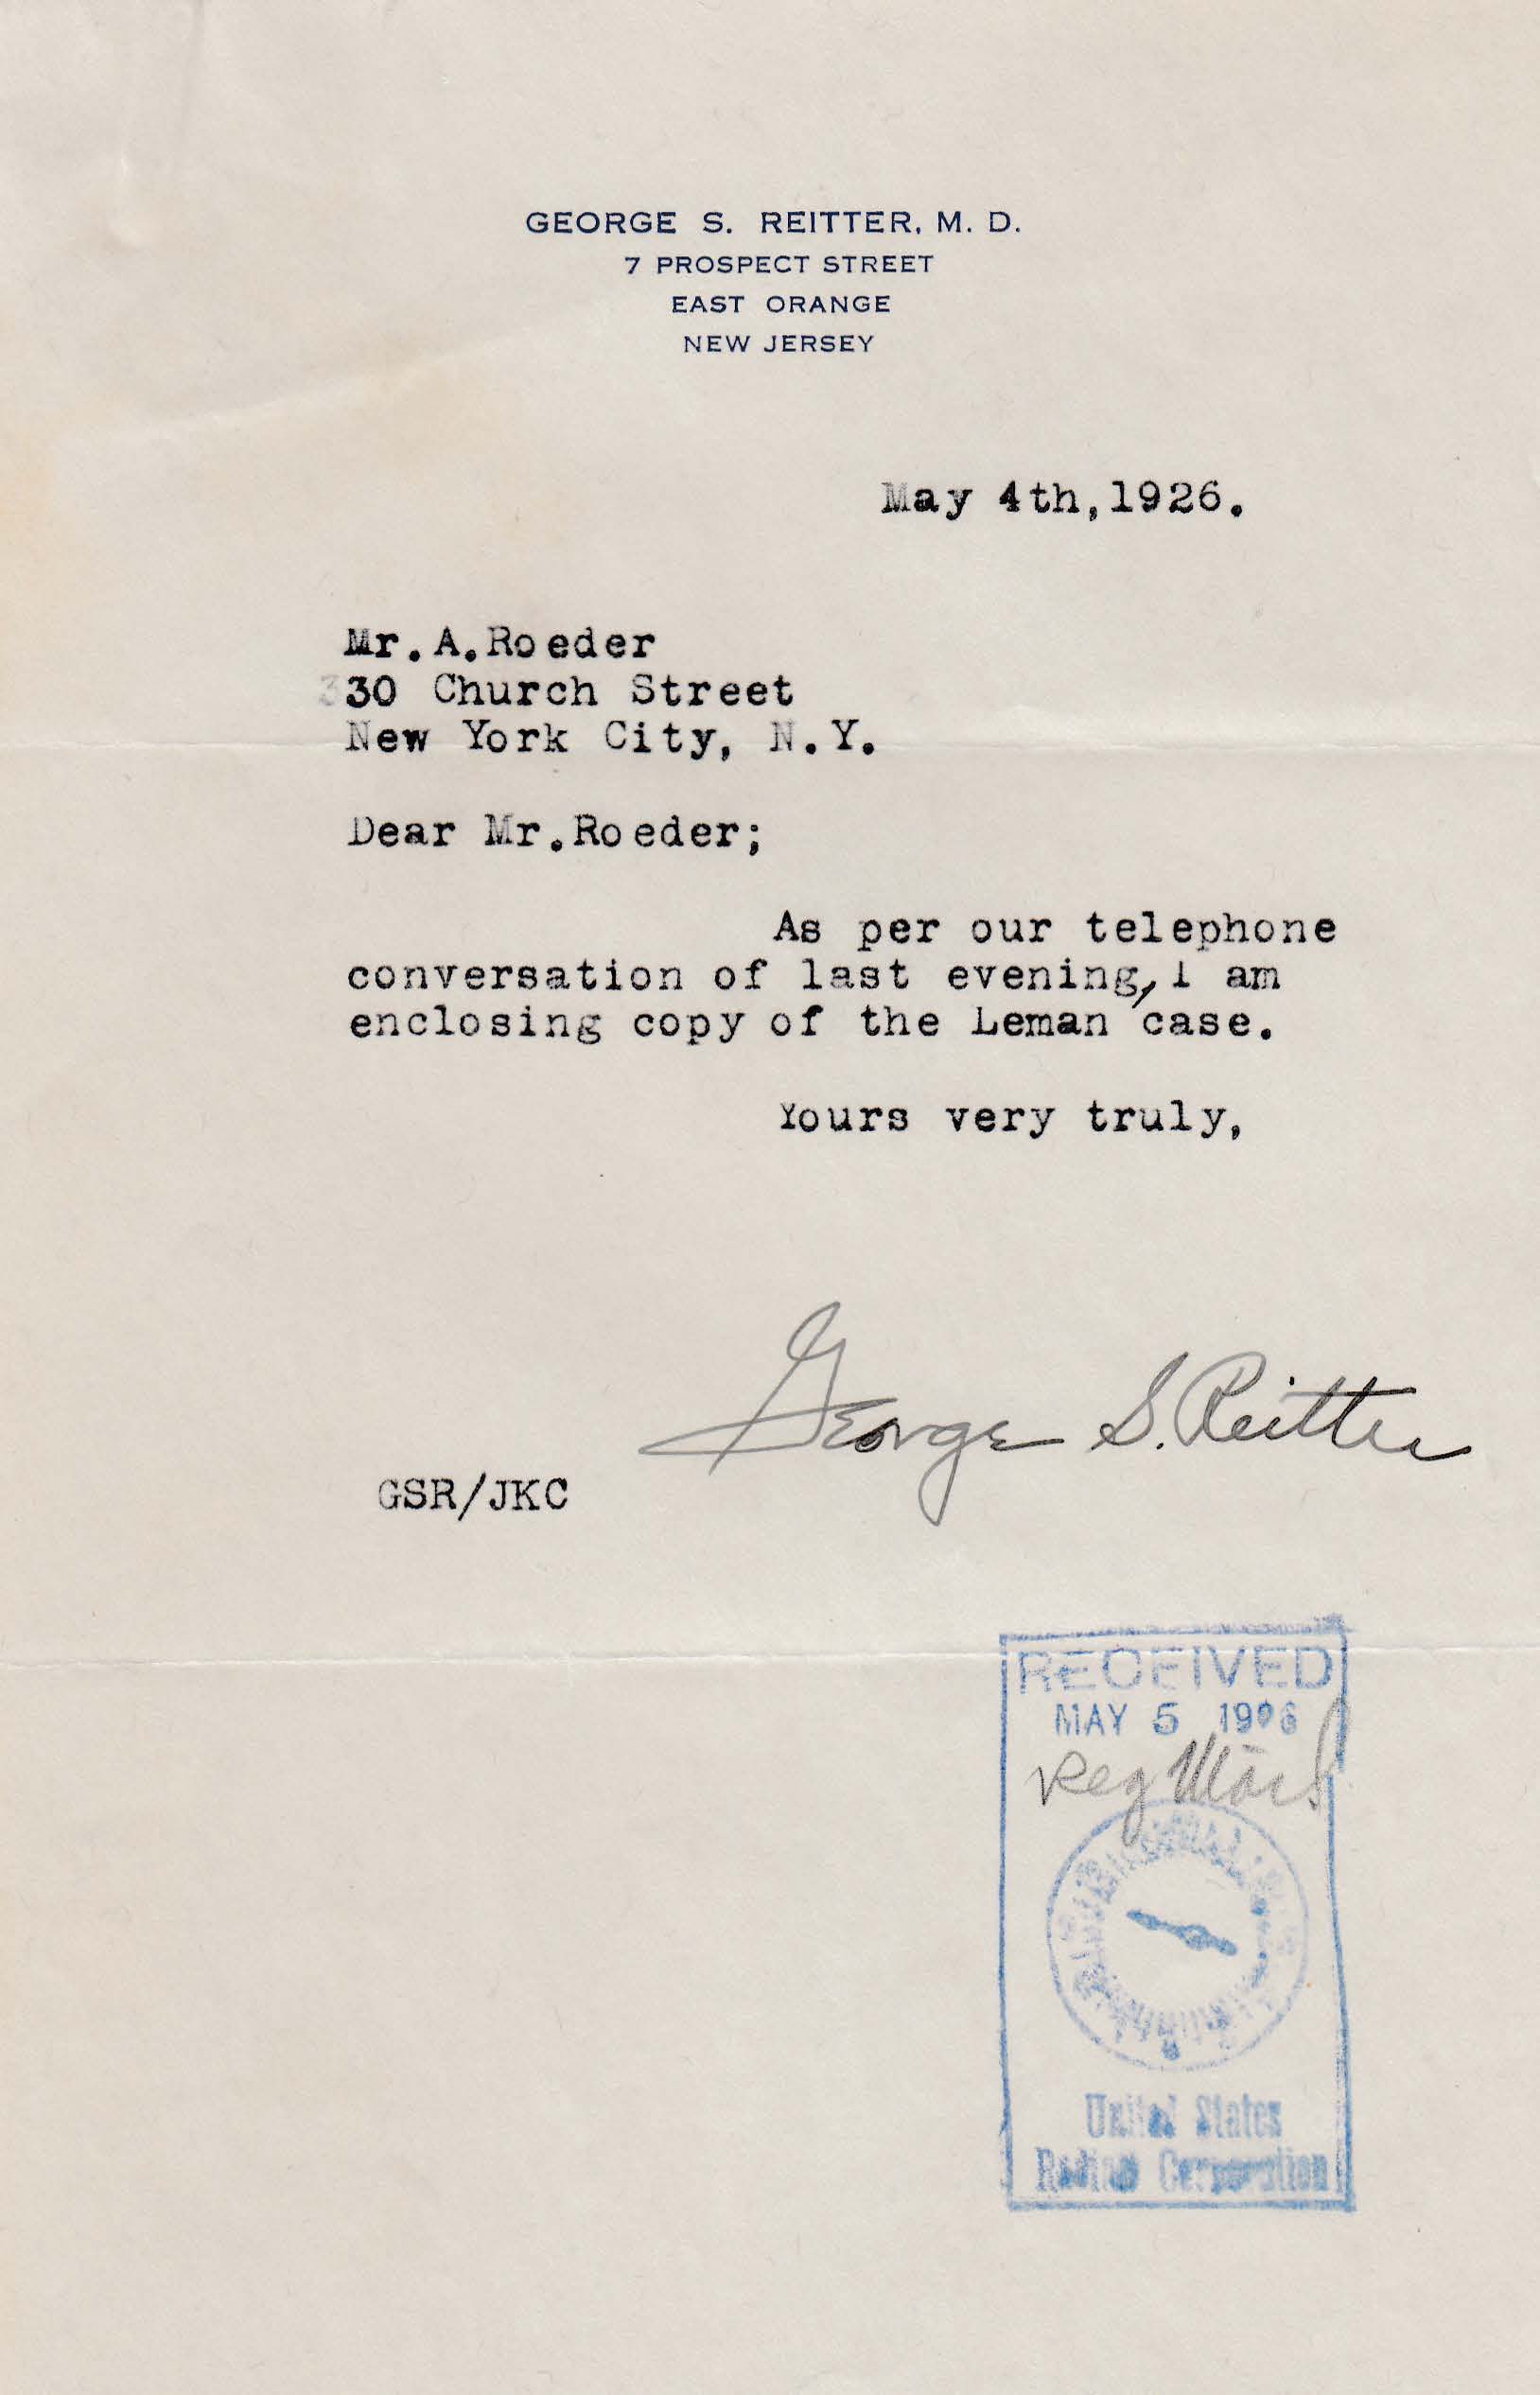 Letters Received to A. Roeder, May 4, 1926